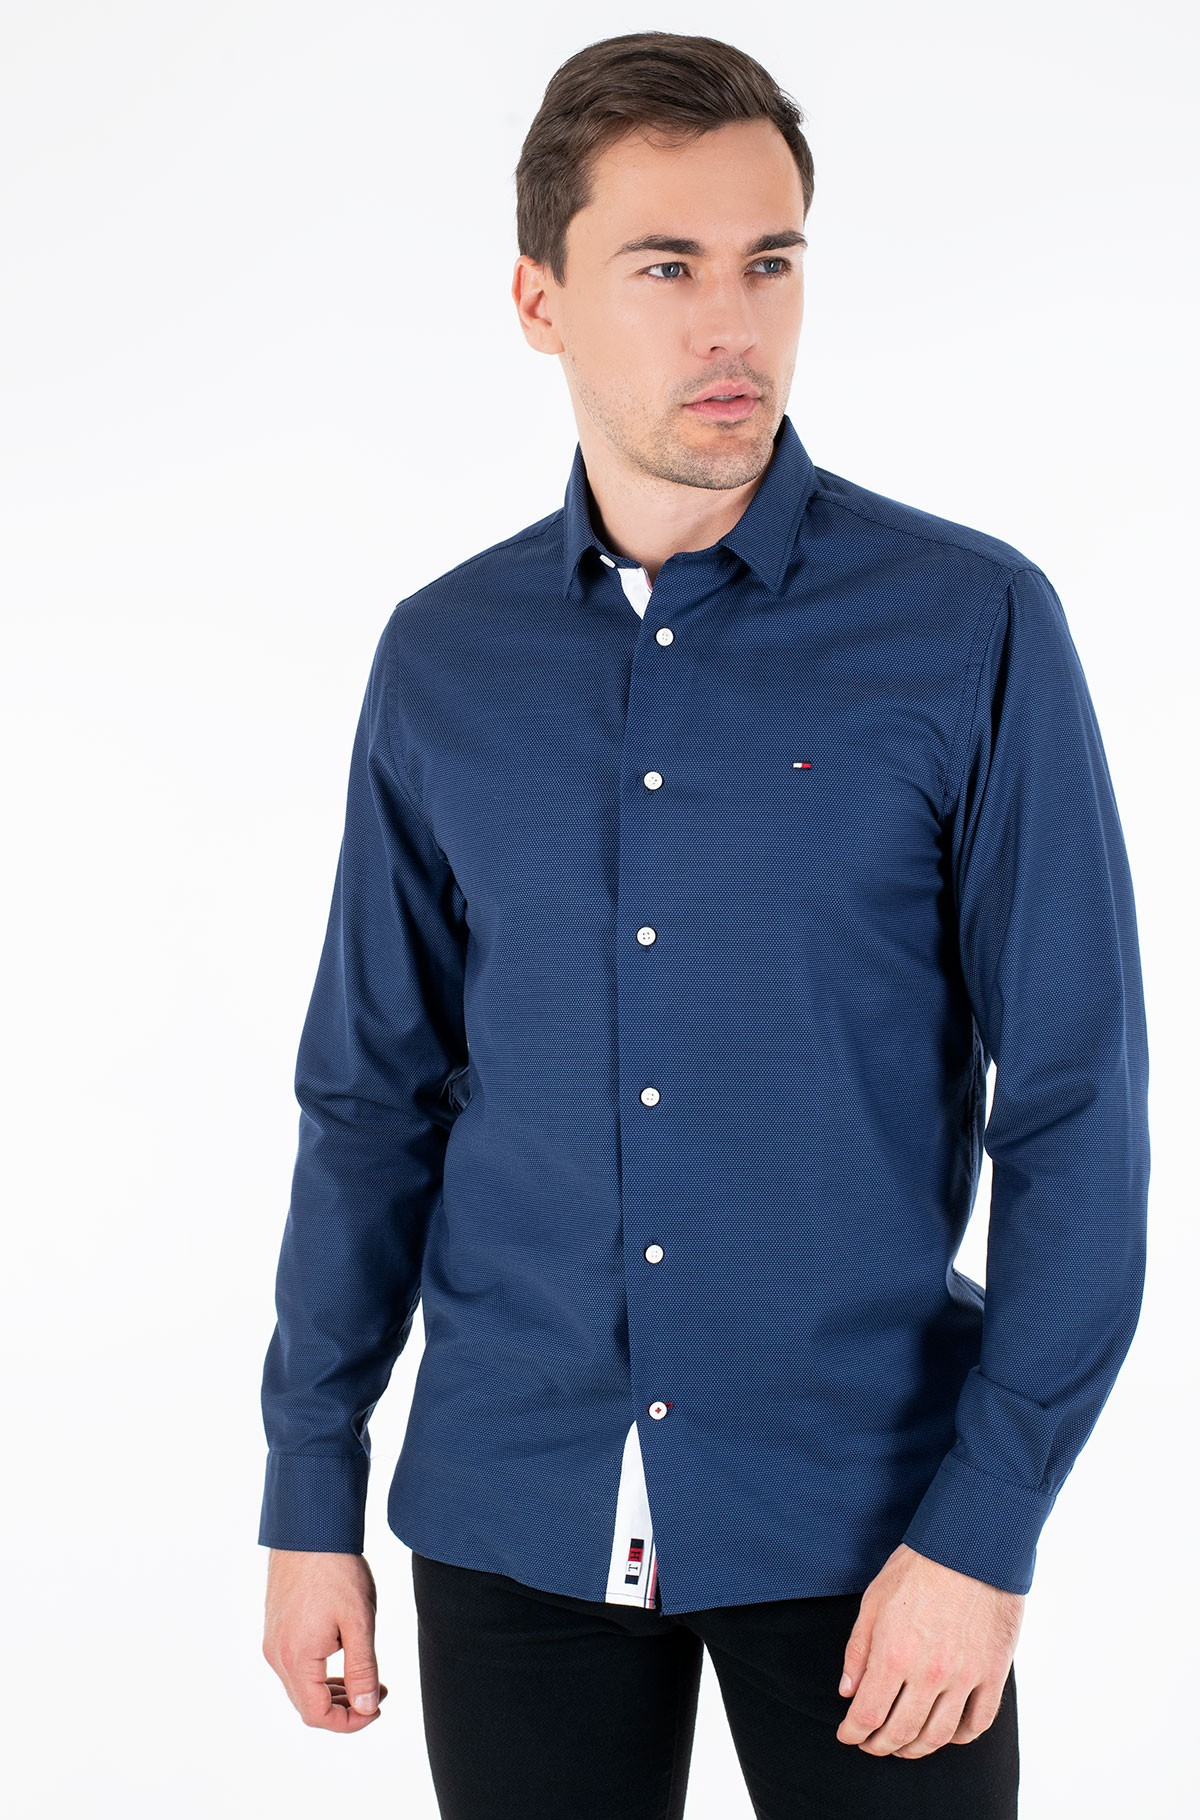 Shirt FLEX TWO TONE DOBBY SHIRT	-full-1